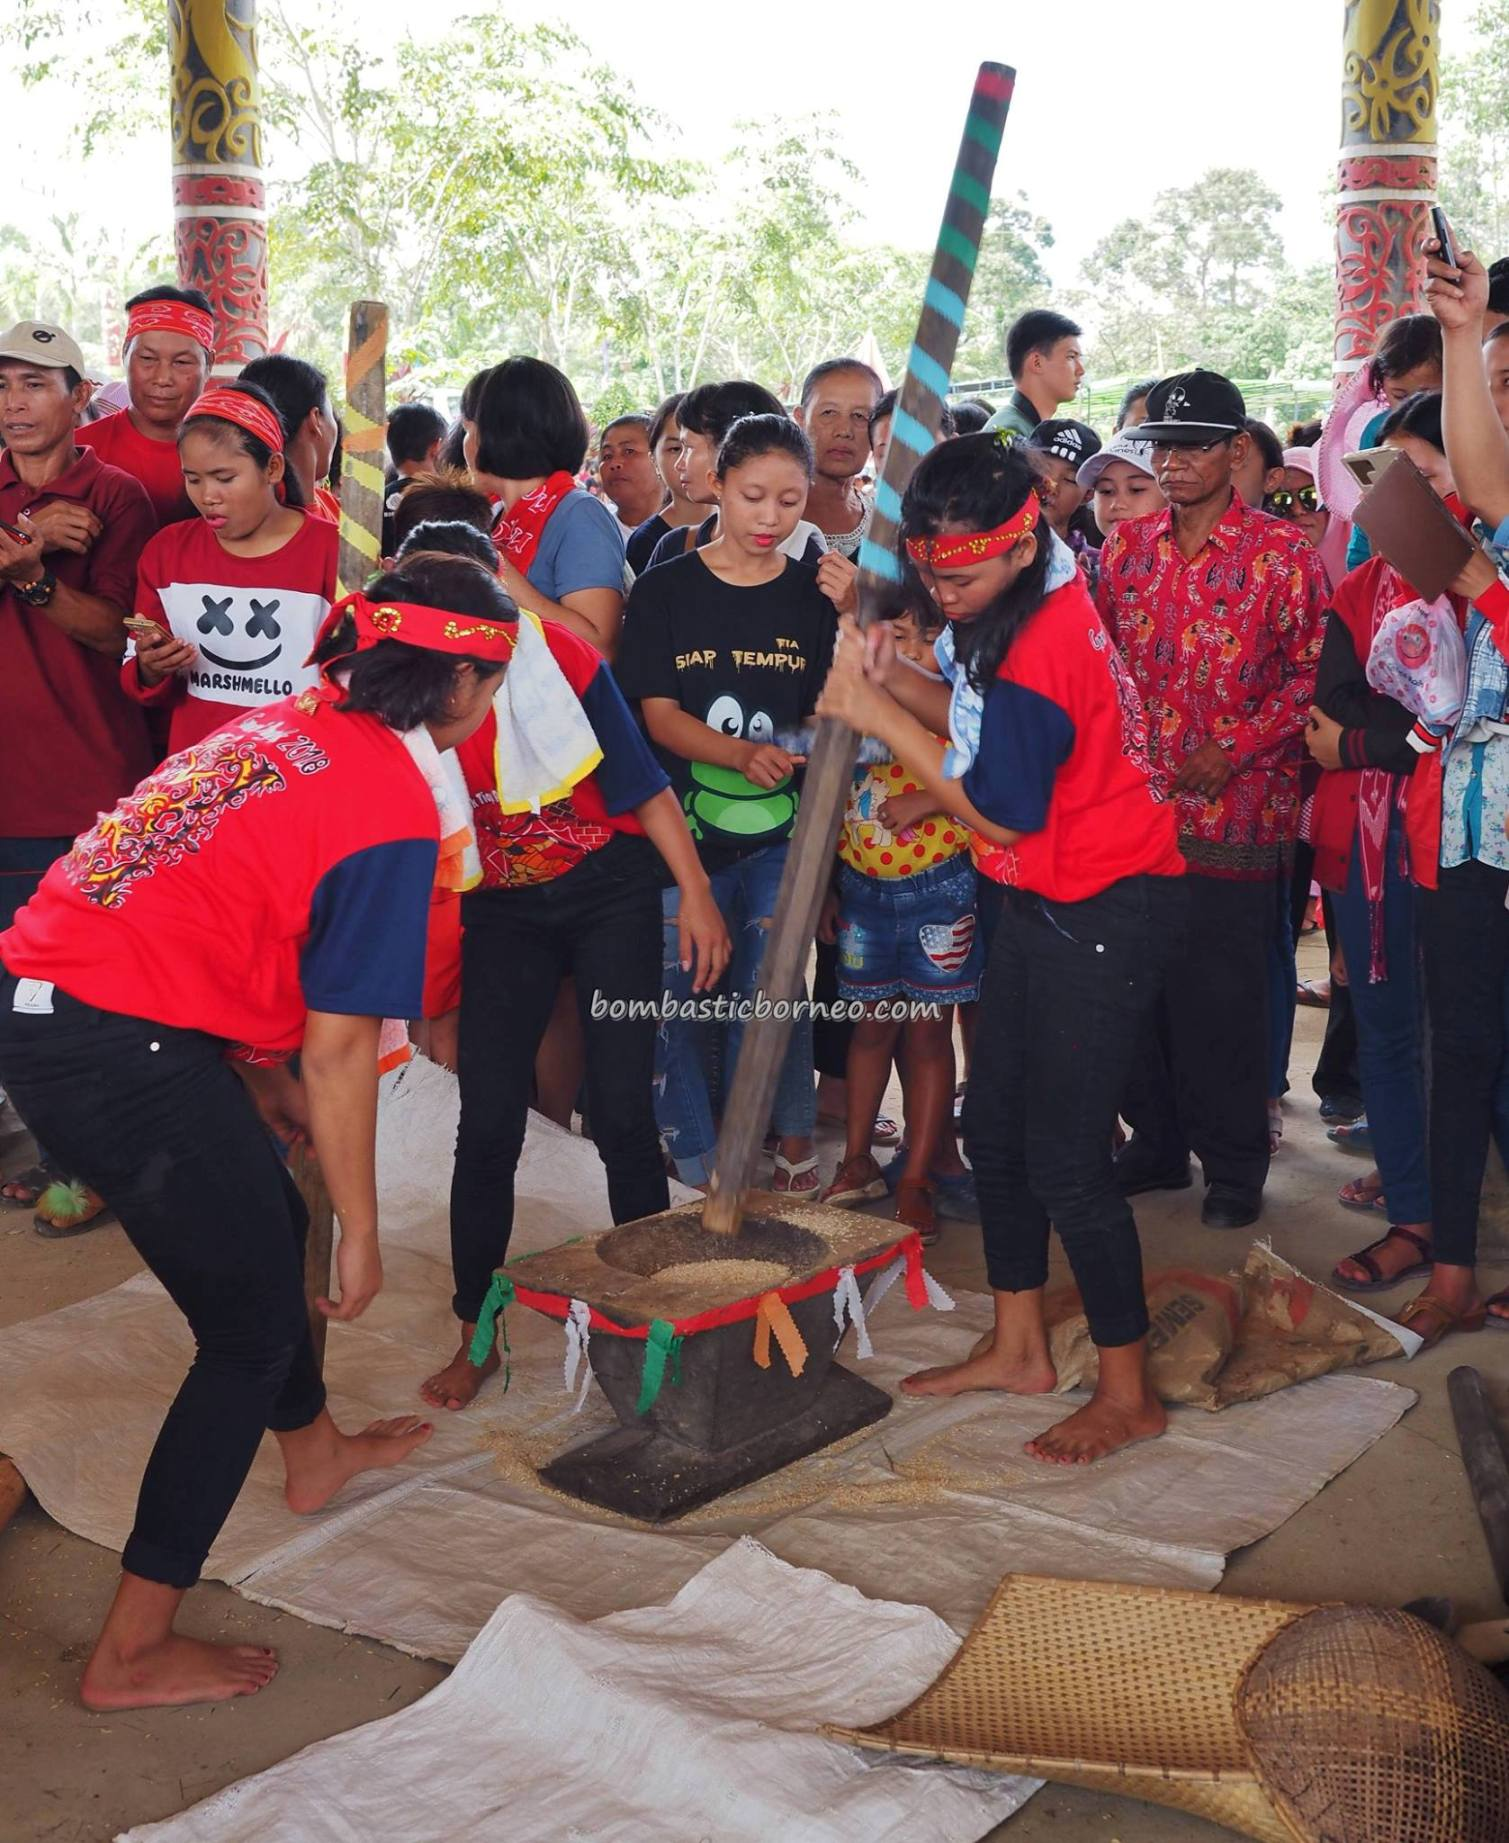 Lomba menumbuk padi, Rumah Betang Raya Dori Mpulor, authentic, traditional, culture, event, native, tribe, tourism, tourist attraction, travel guide, trans borneo, 跨境婆罗洲游踪, 印尼西加里曼丹, 传统原住民丰收节旅游